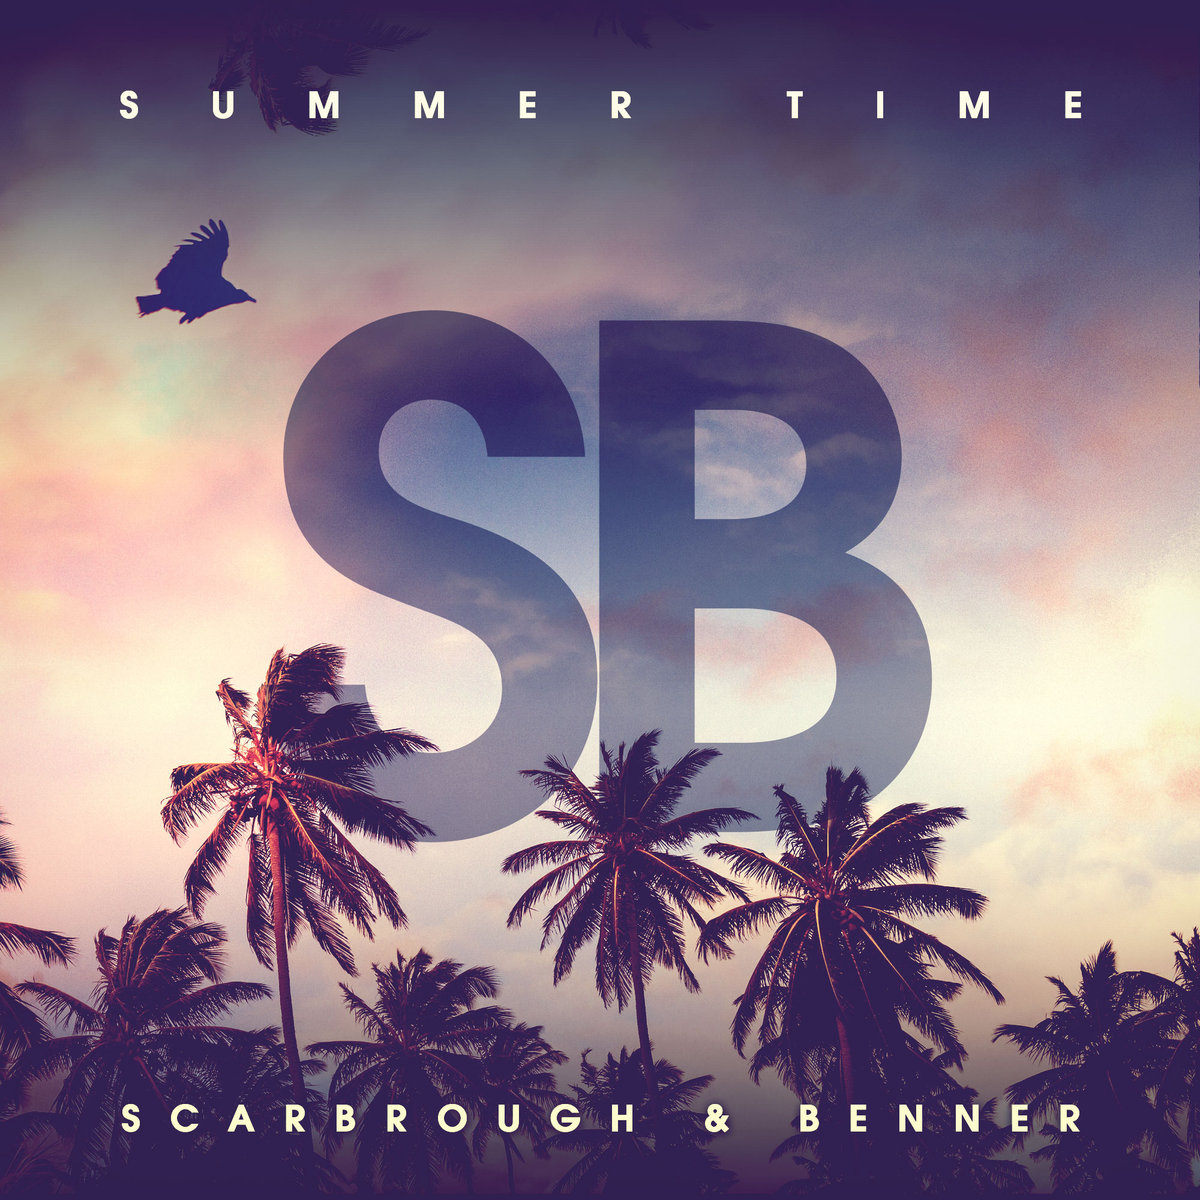 Scarbrough & Benner - Summertime @ 'Summertime' album (little dragon, thievery corporation)